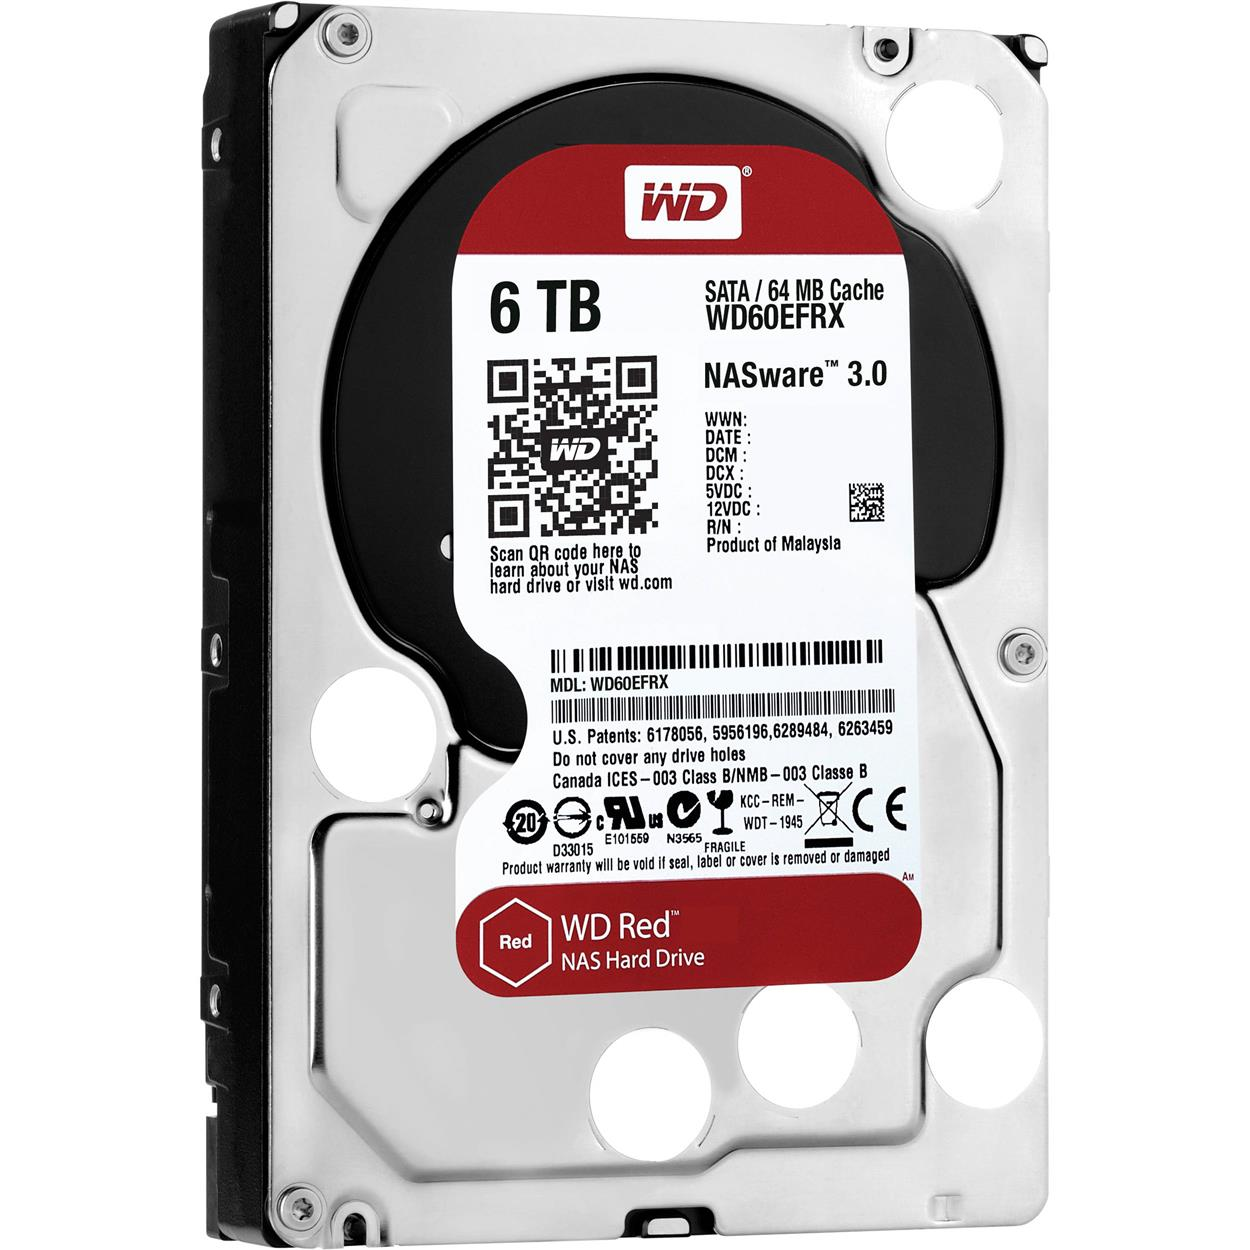 WESTERN DIGITAL WD RED NAS 6TB  HARDDRIVE WD60EFRX